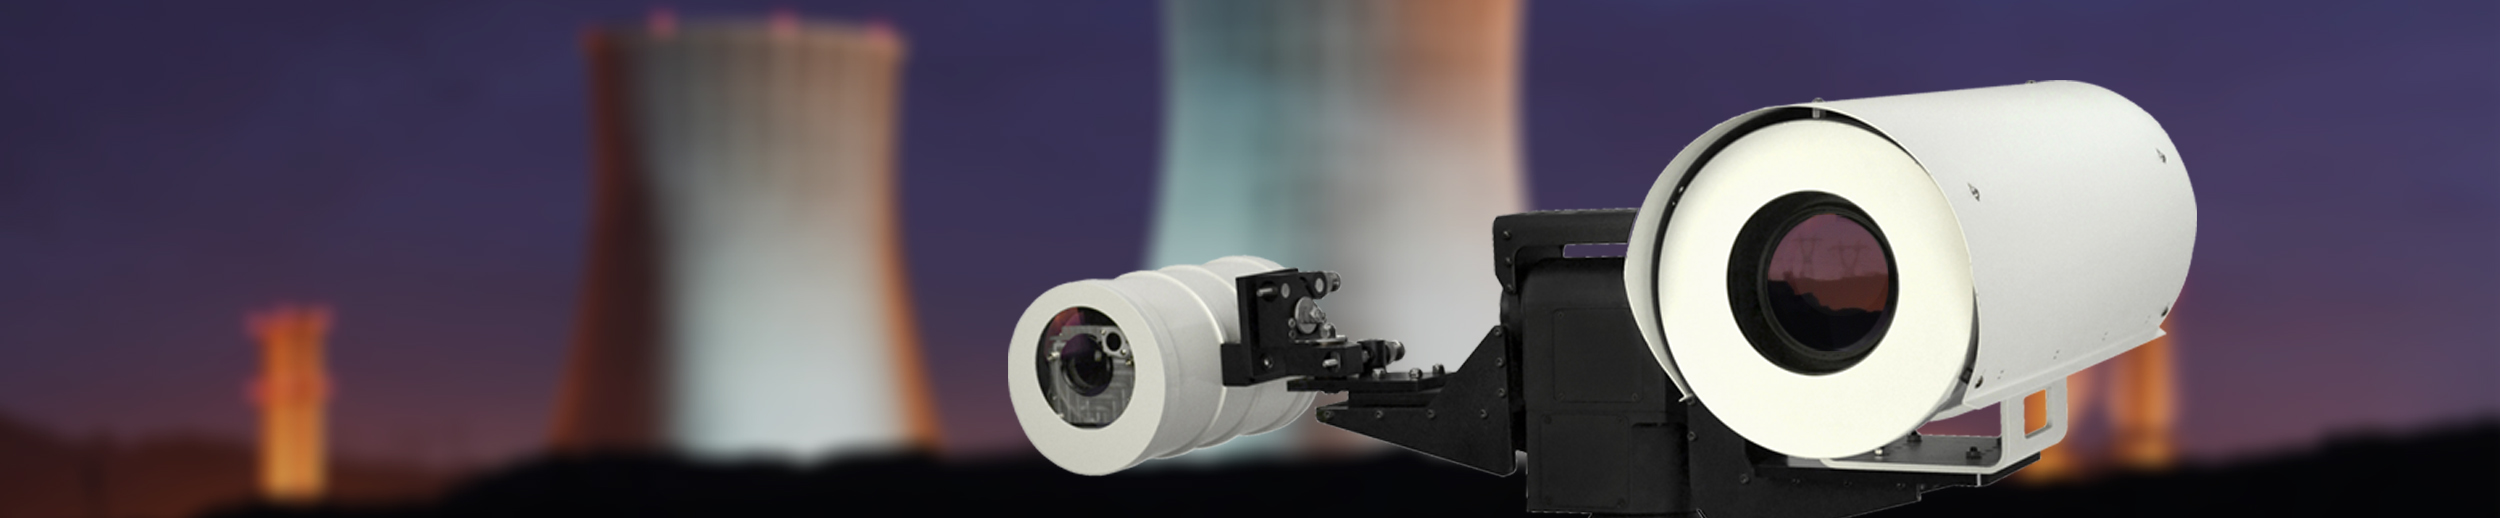 Opgral Near Infrared Camera Systems